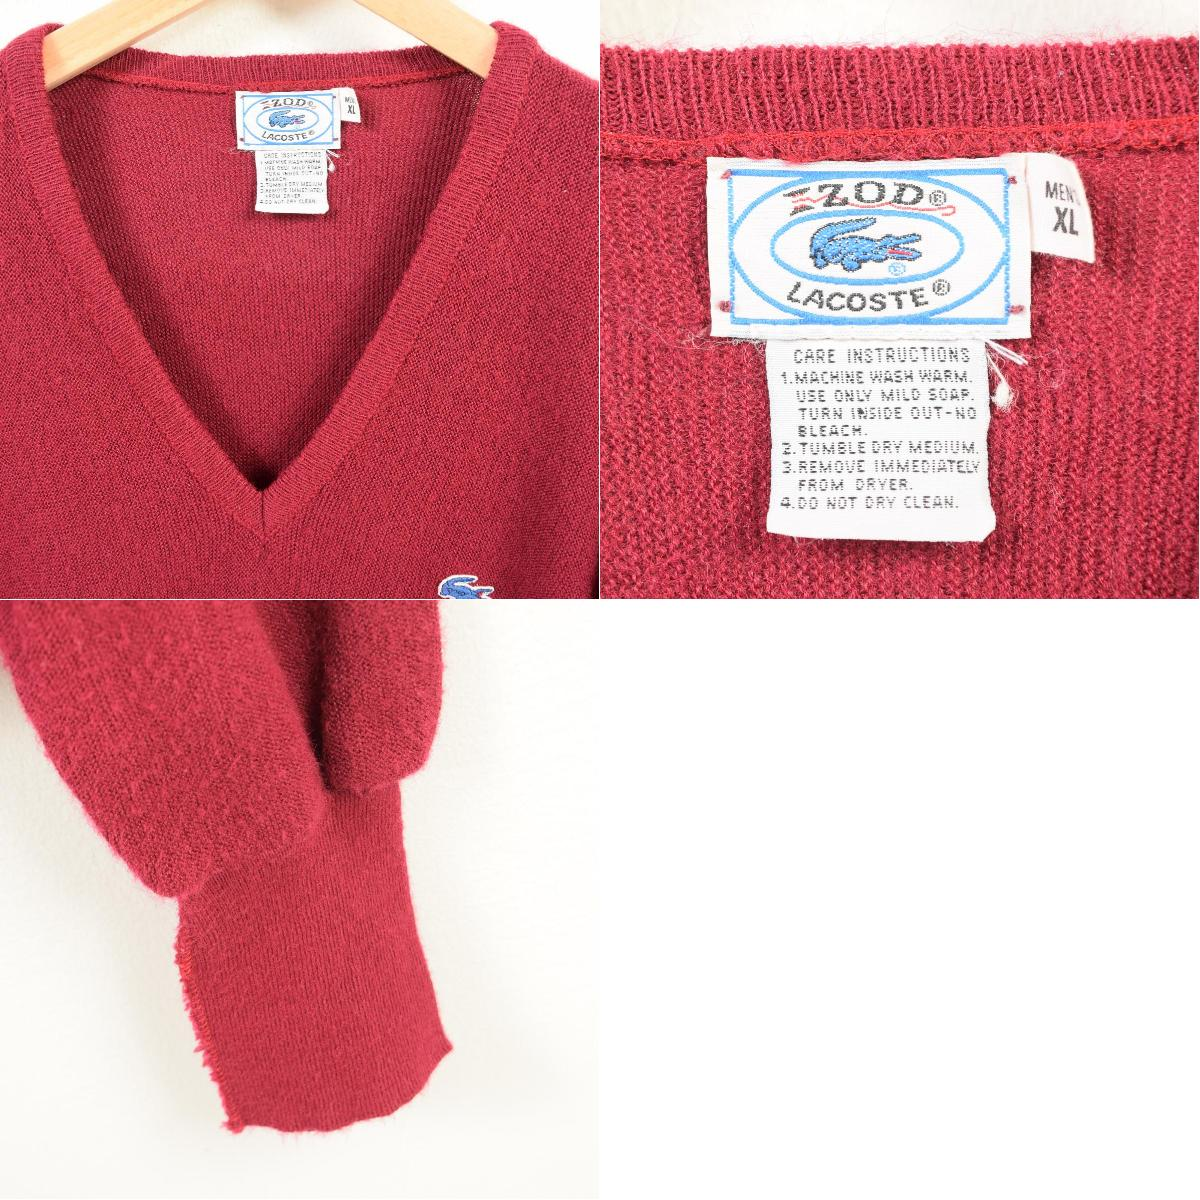 542172b4 70-80 generation Lacoste LACOSTE IZOD V neck acrylic knit sweater men XL  vintage /wav4534